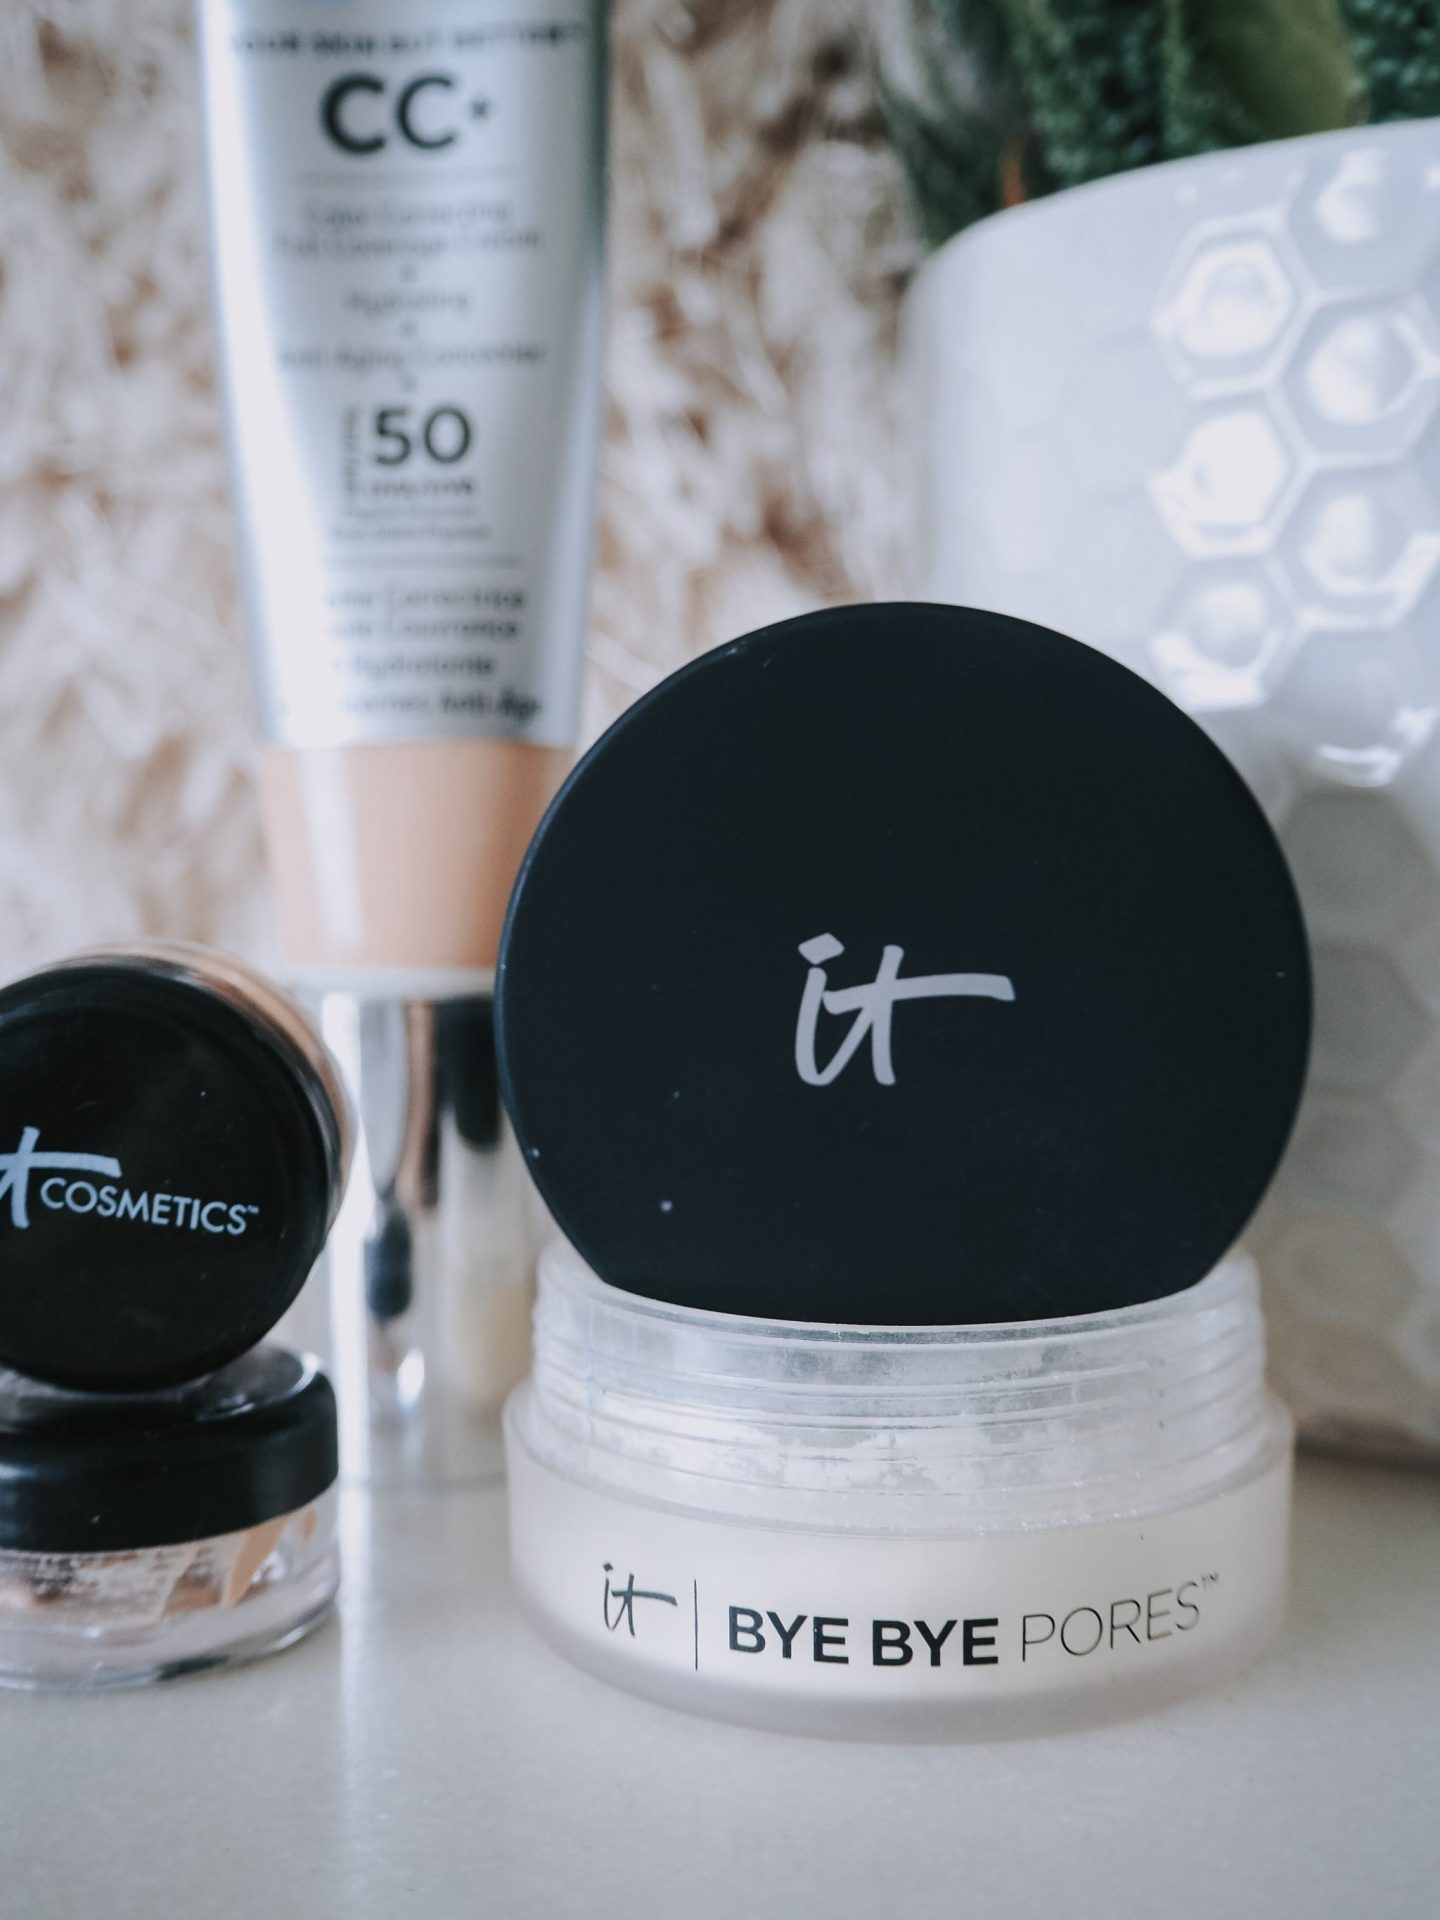 An Introduction To It Cosmetics - close up image of branding & bye bye pores